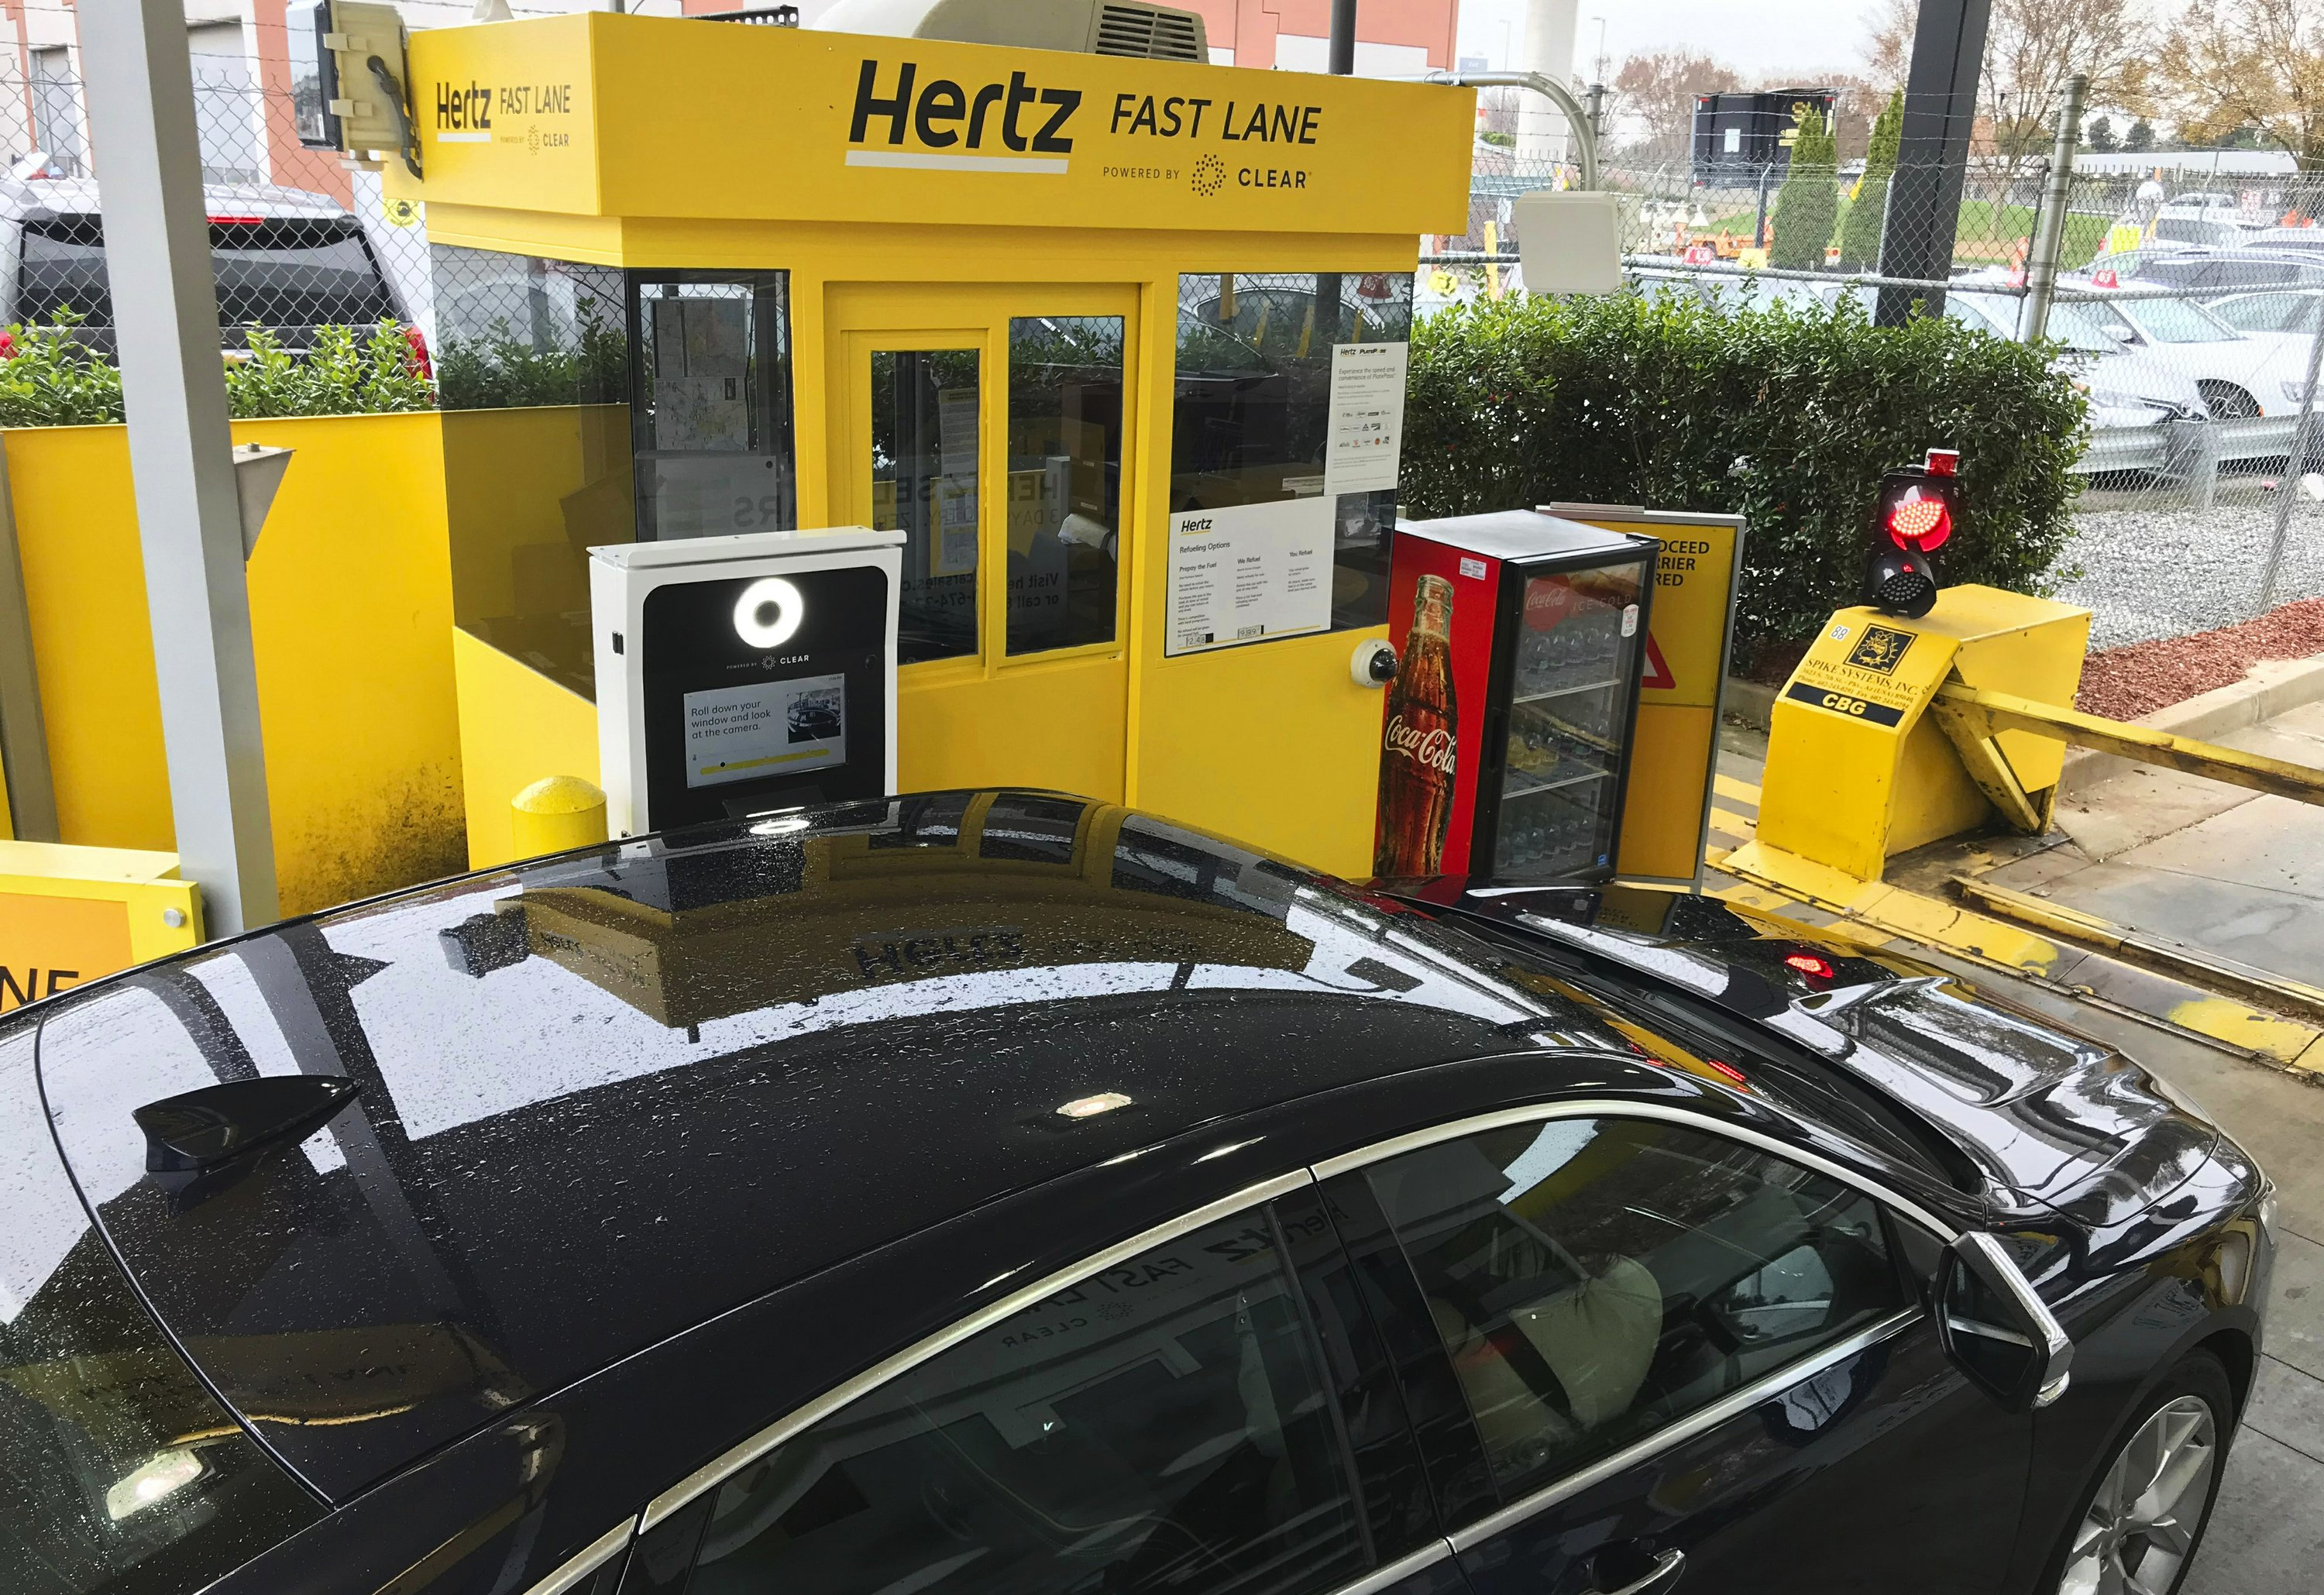 Hertz Clear Partner To Speed Rentals With Biometric Scans